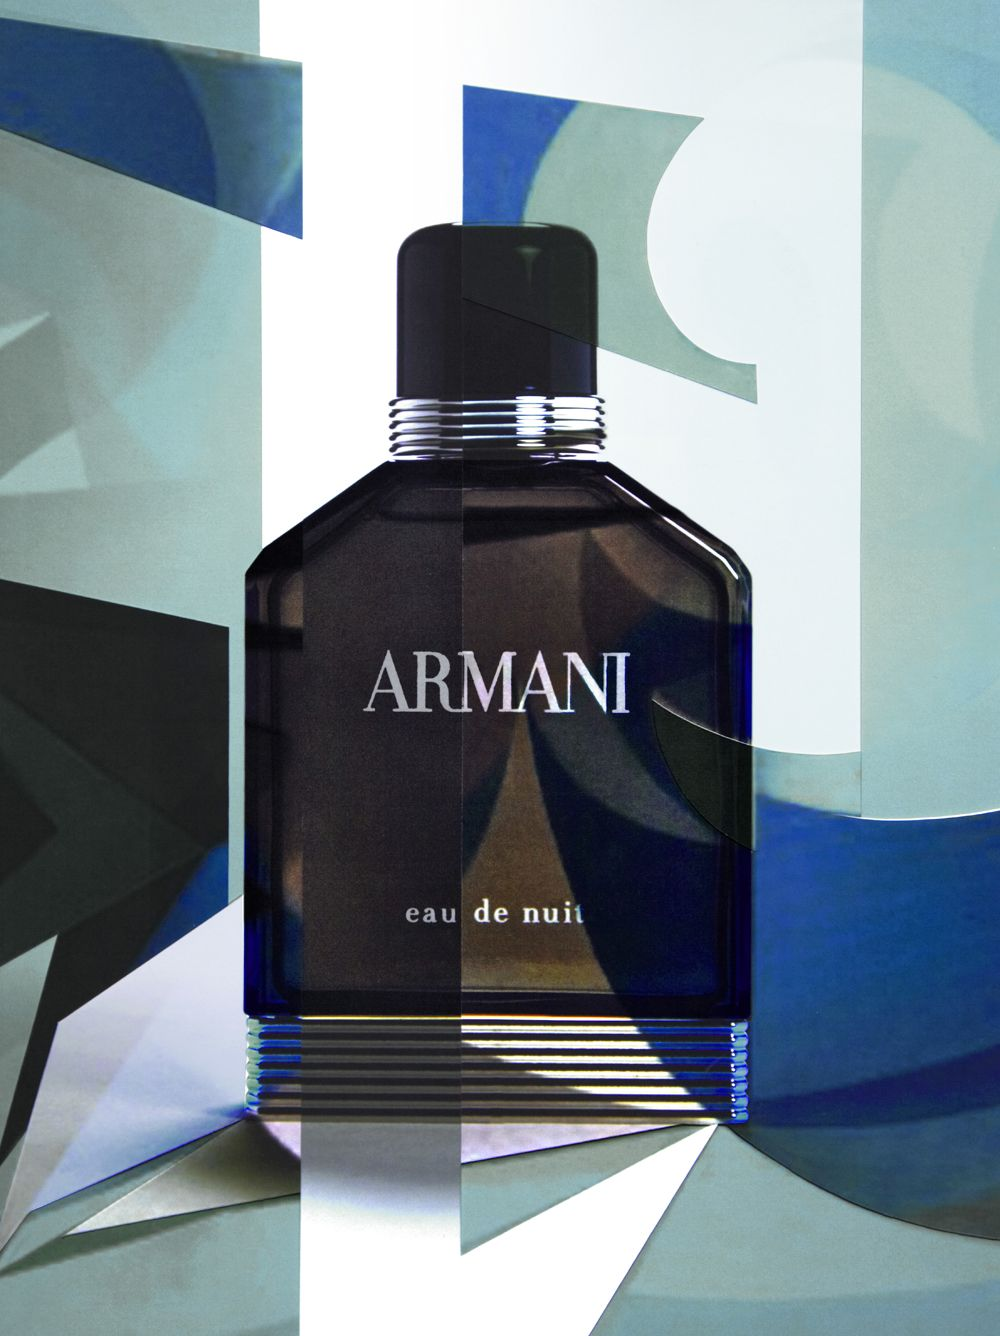 f1fdd975040  GiorgioArmani Eau de Nuit for Men Perfumes Hombre